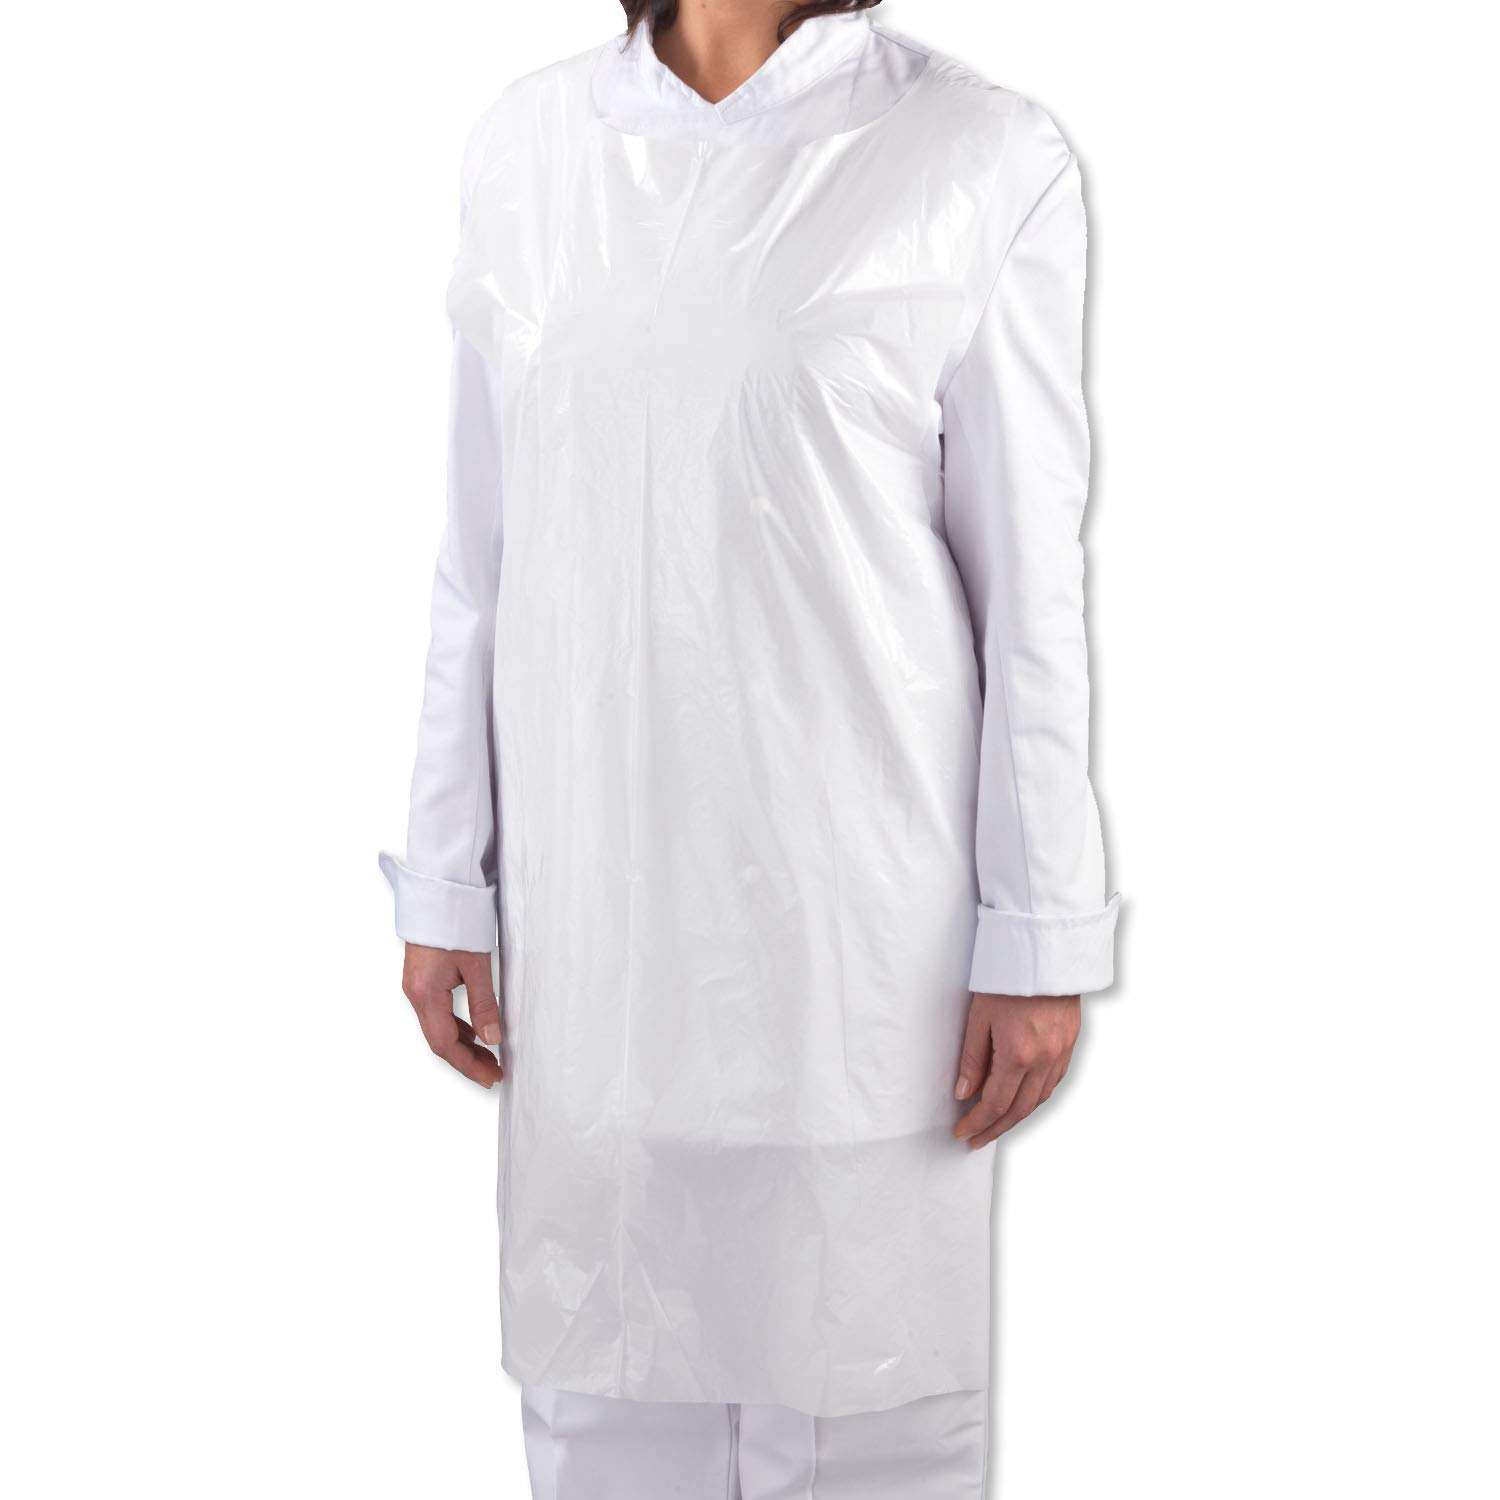 30 x Simply Direct White Poly Polythene Disposable Aprons 107cm x 69cm - 42 x 27 Choice of Quantities